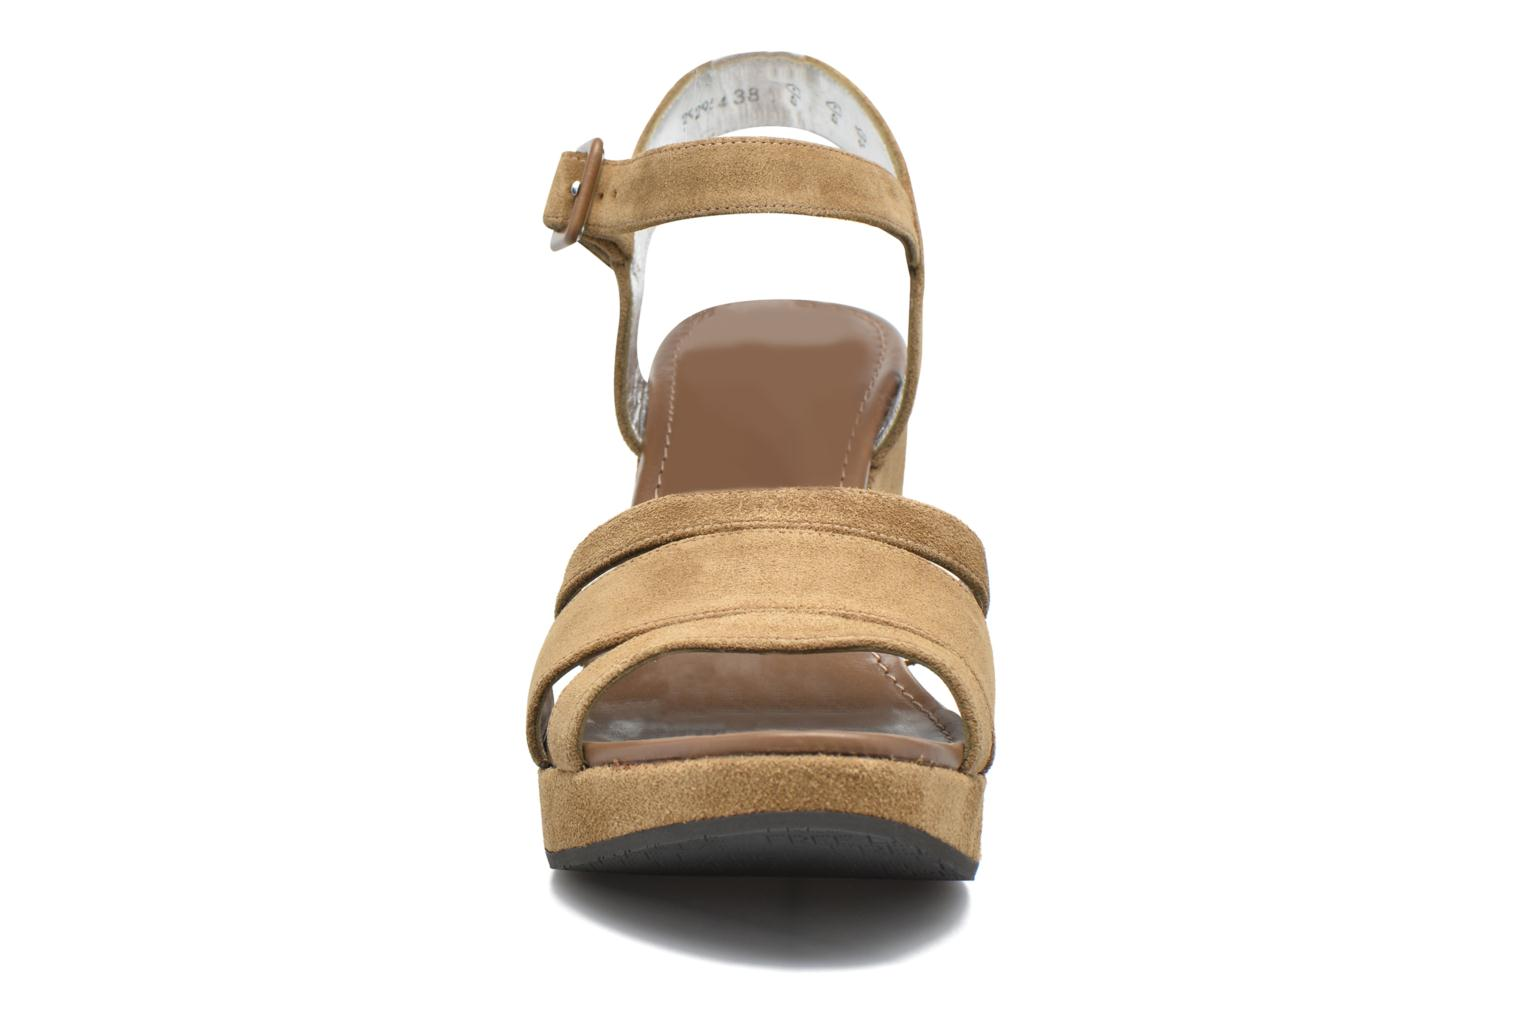 Ystad 7 Sandal Sonia extra taupe